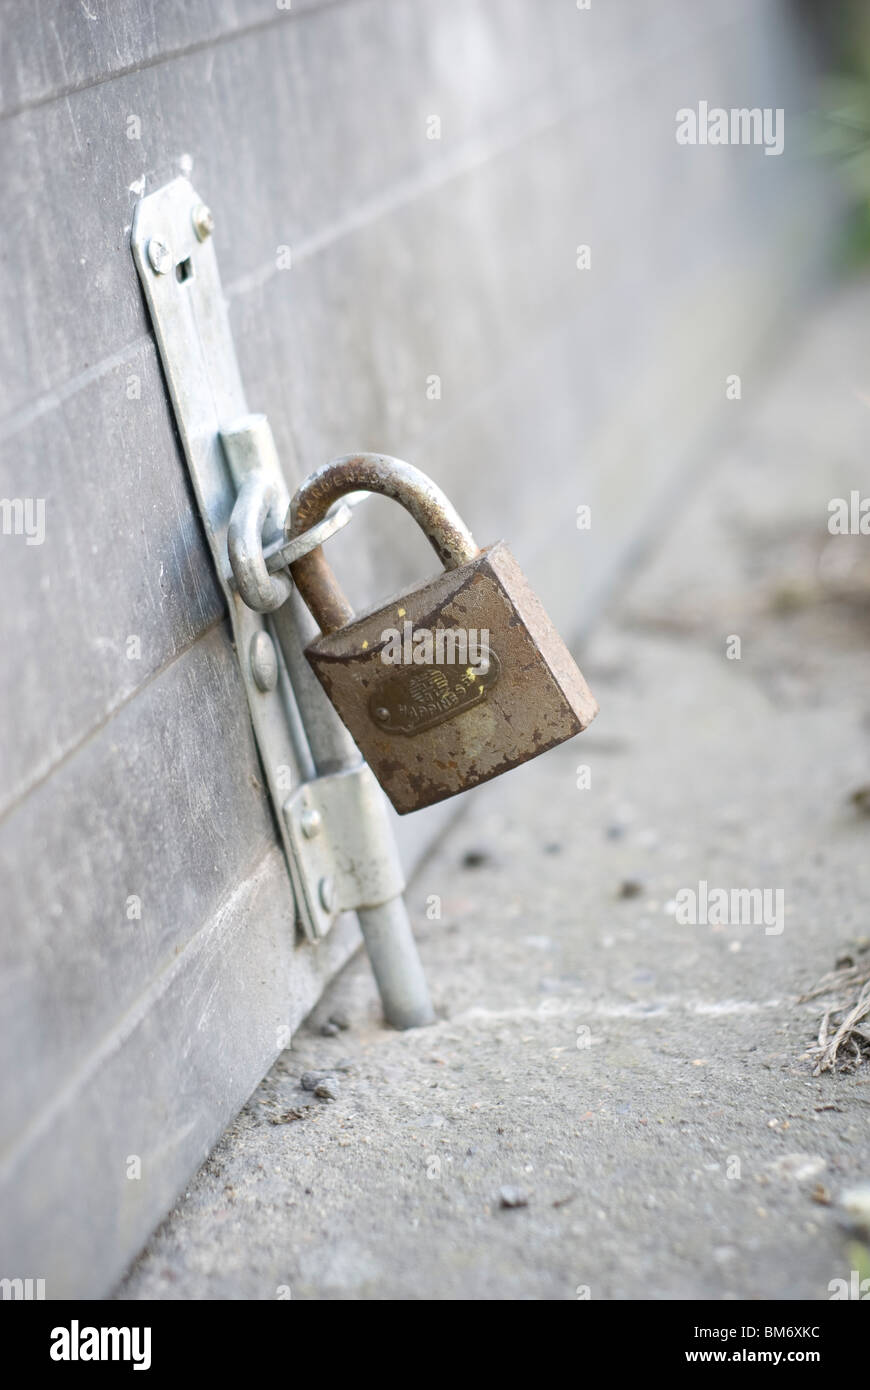 rusty hasp padlock for garage door - Stock Image & Hasp Stock Photos \u0026 Hasp Stock Images - Alamy